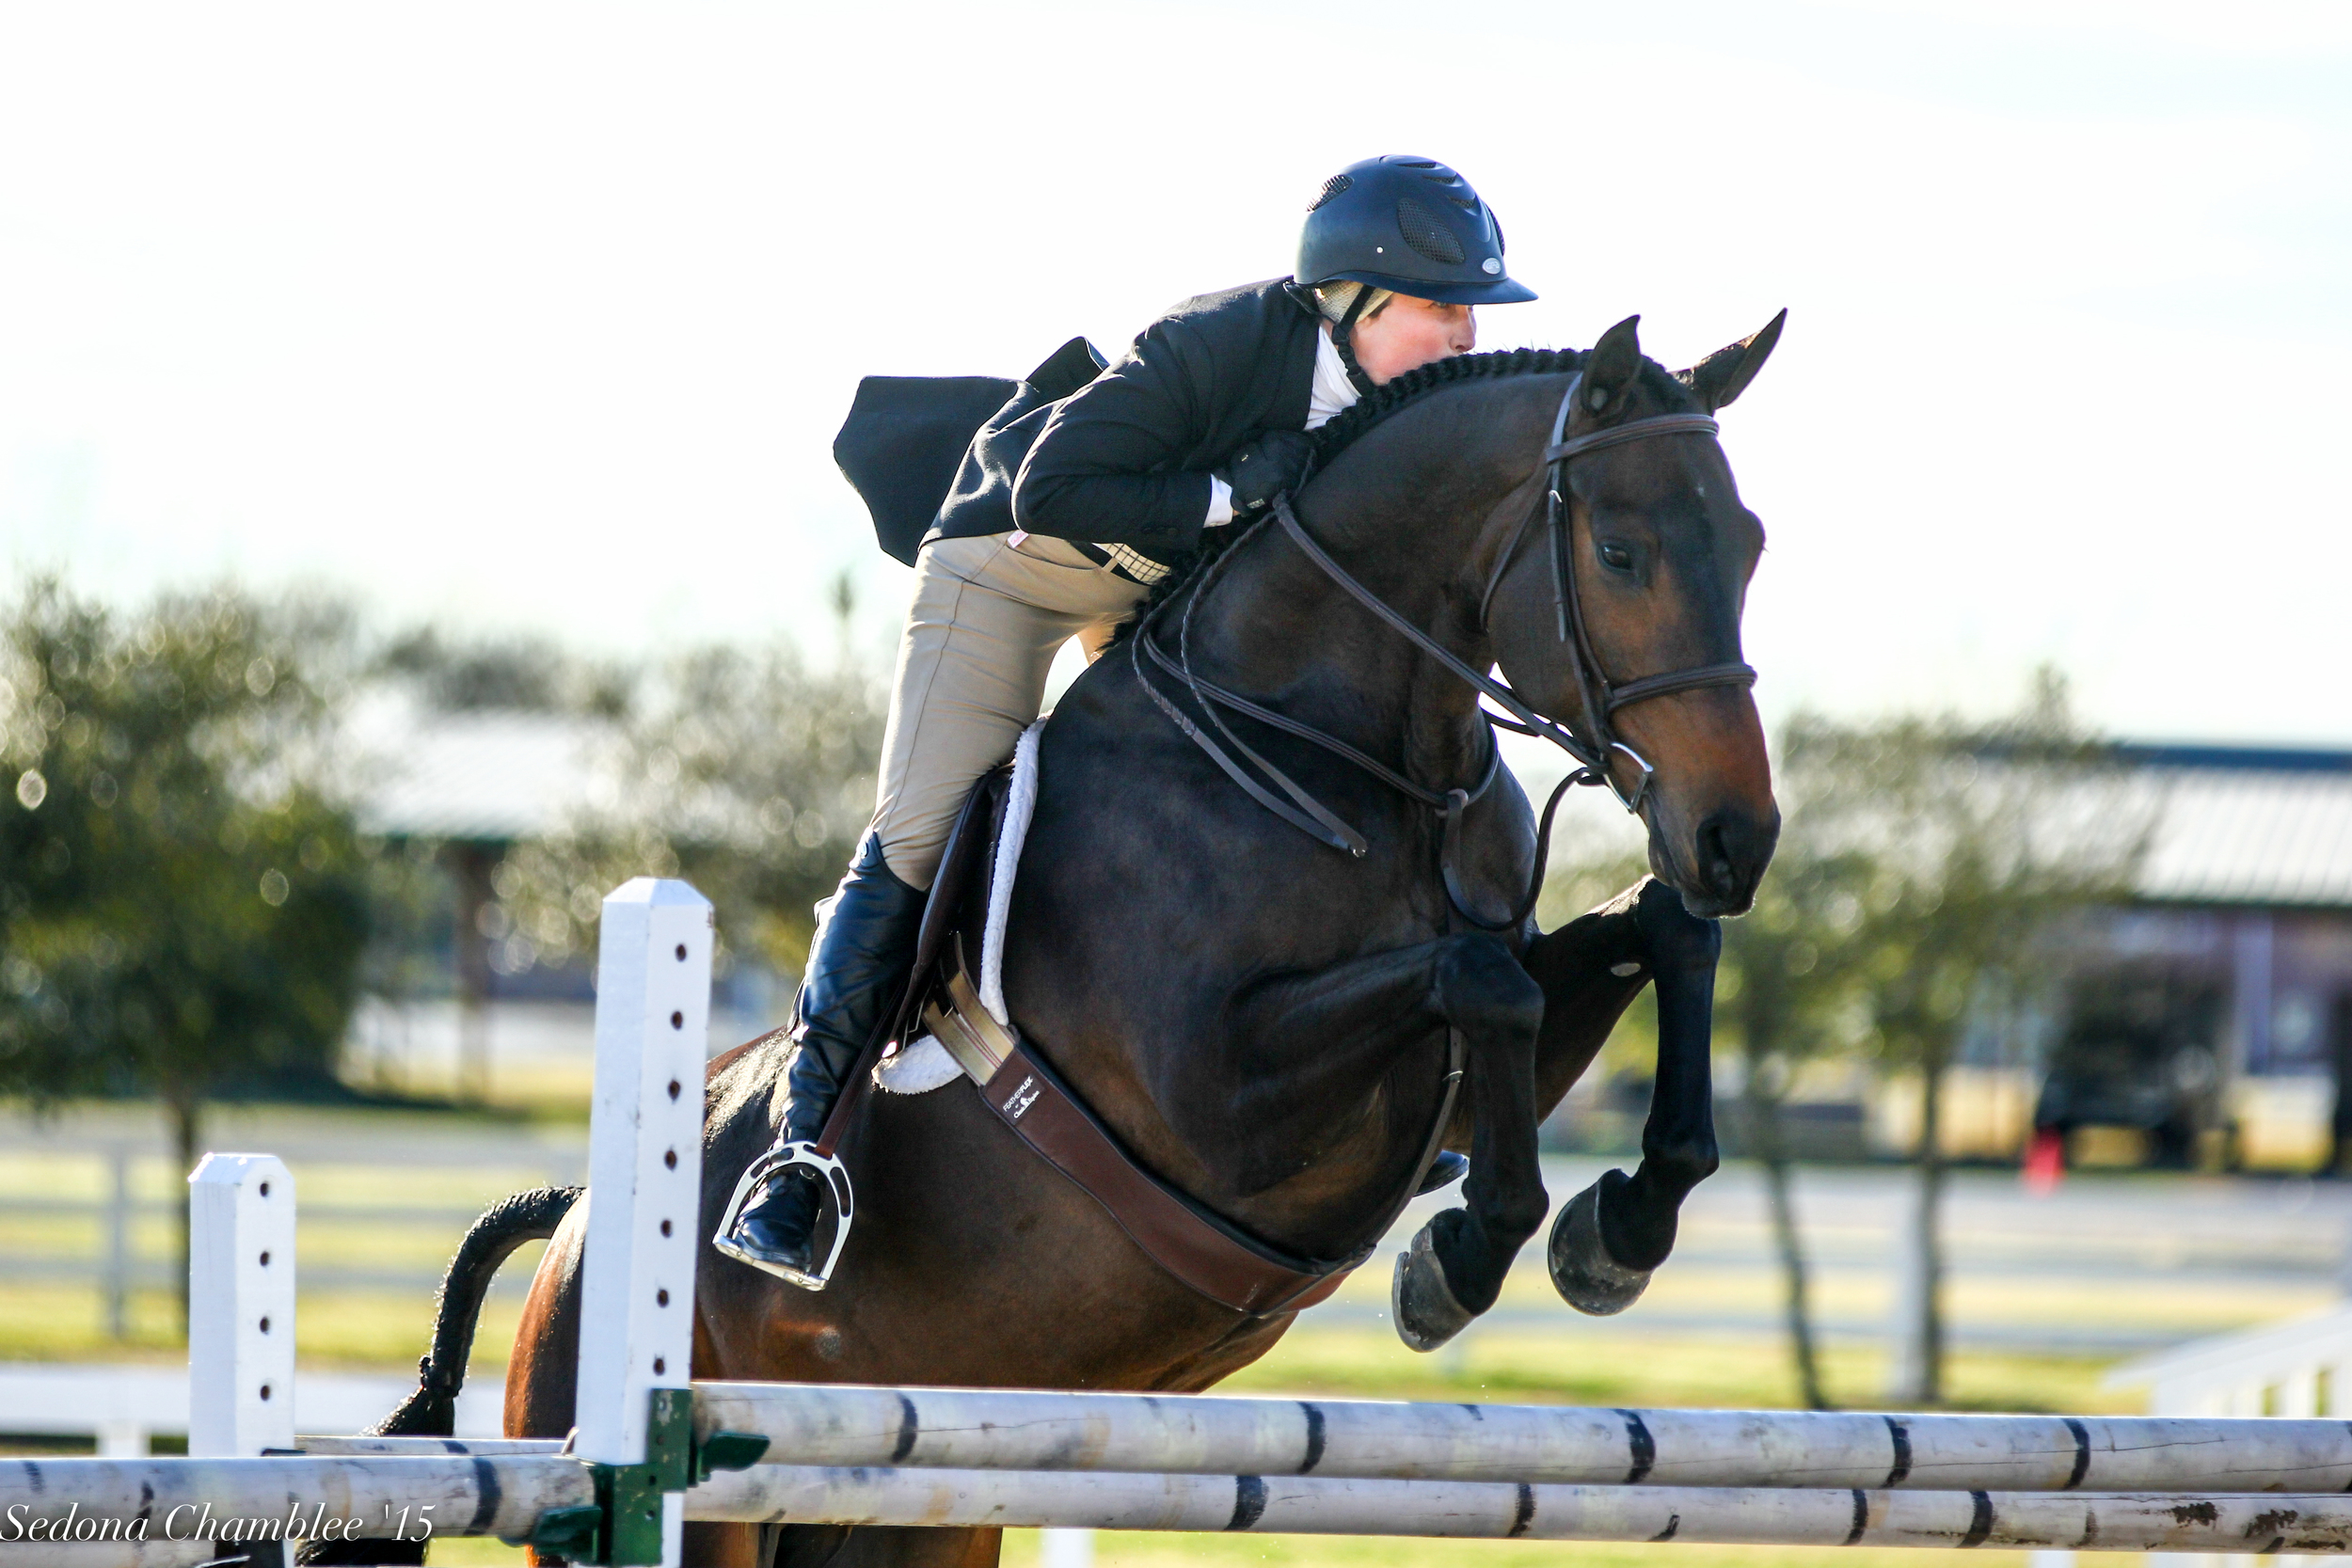 Linus , 16.1 h six year-old gelding, full brother to Harley. Owned by Haley Redifer, Champion at many shows in the First Year and Junior Hunters.